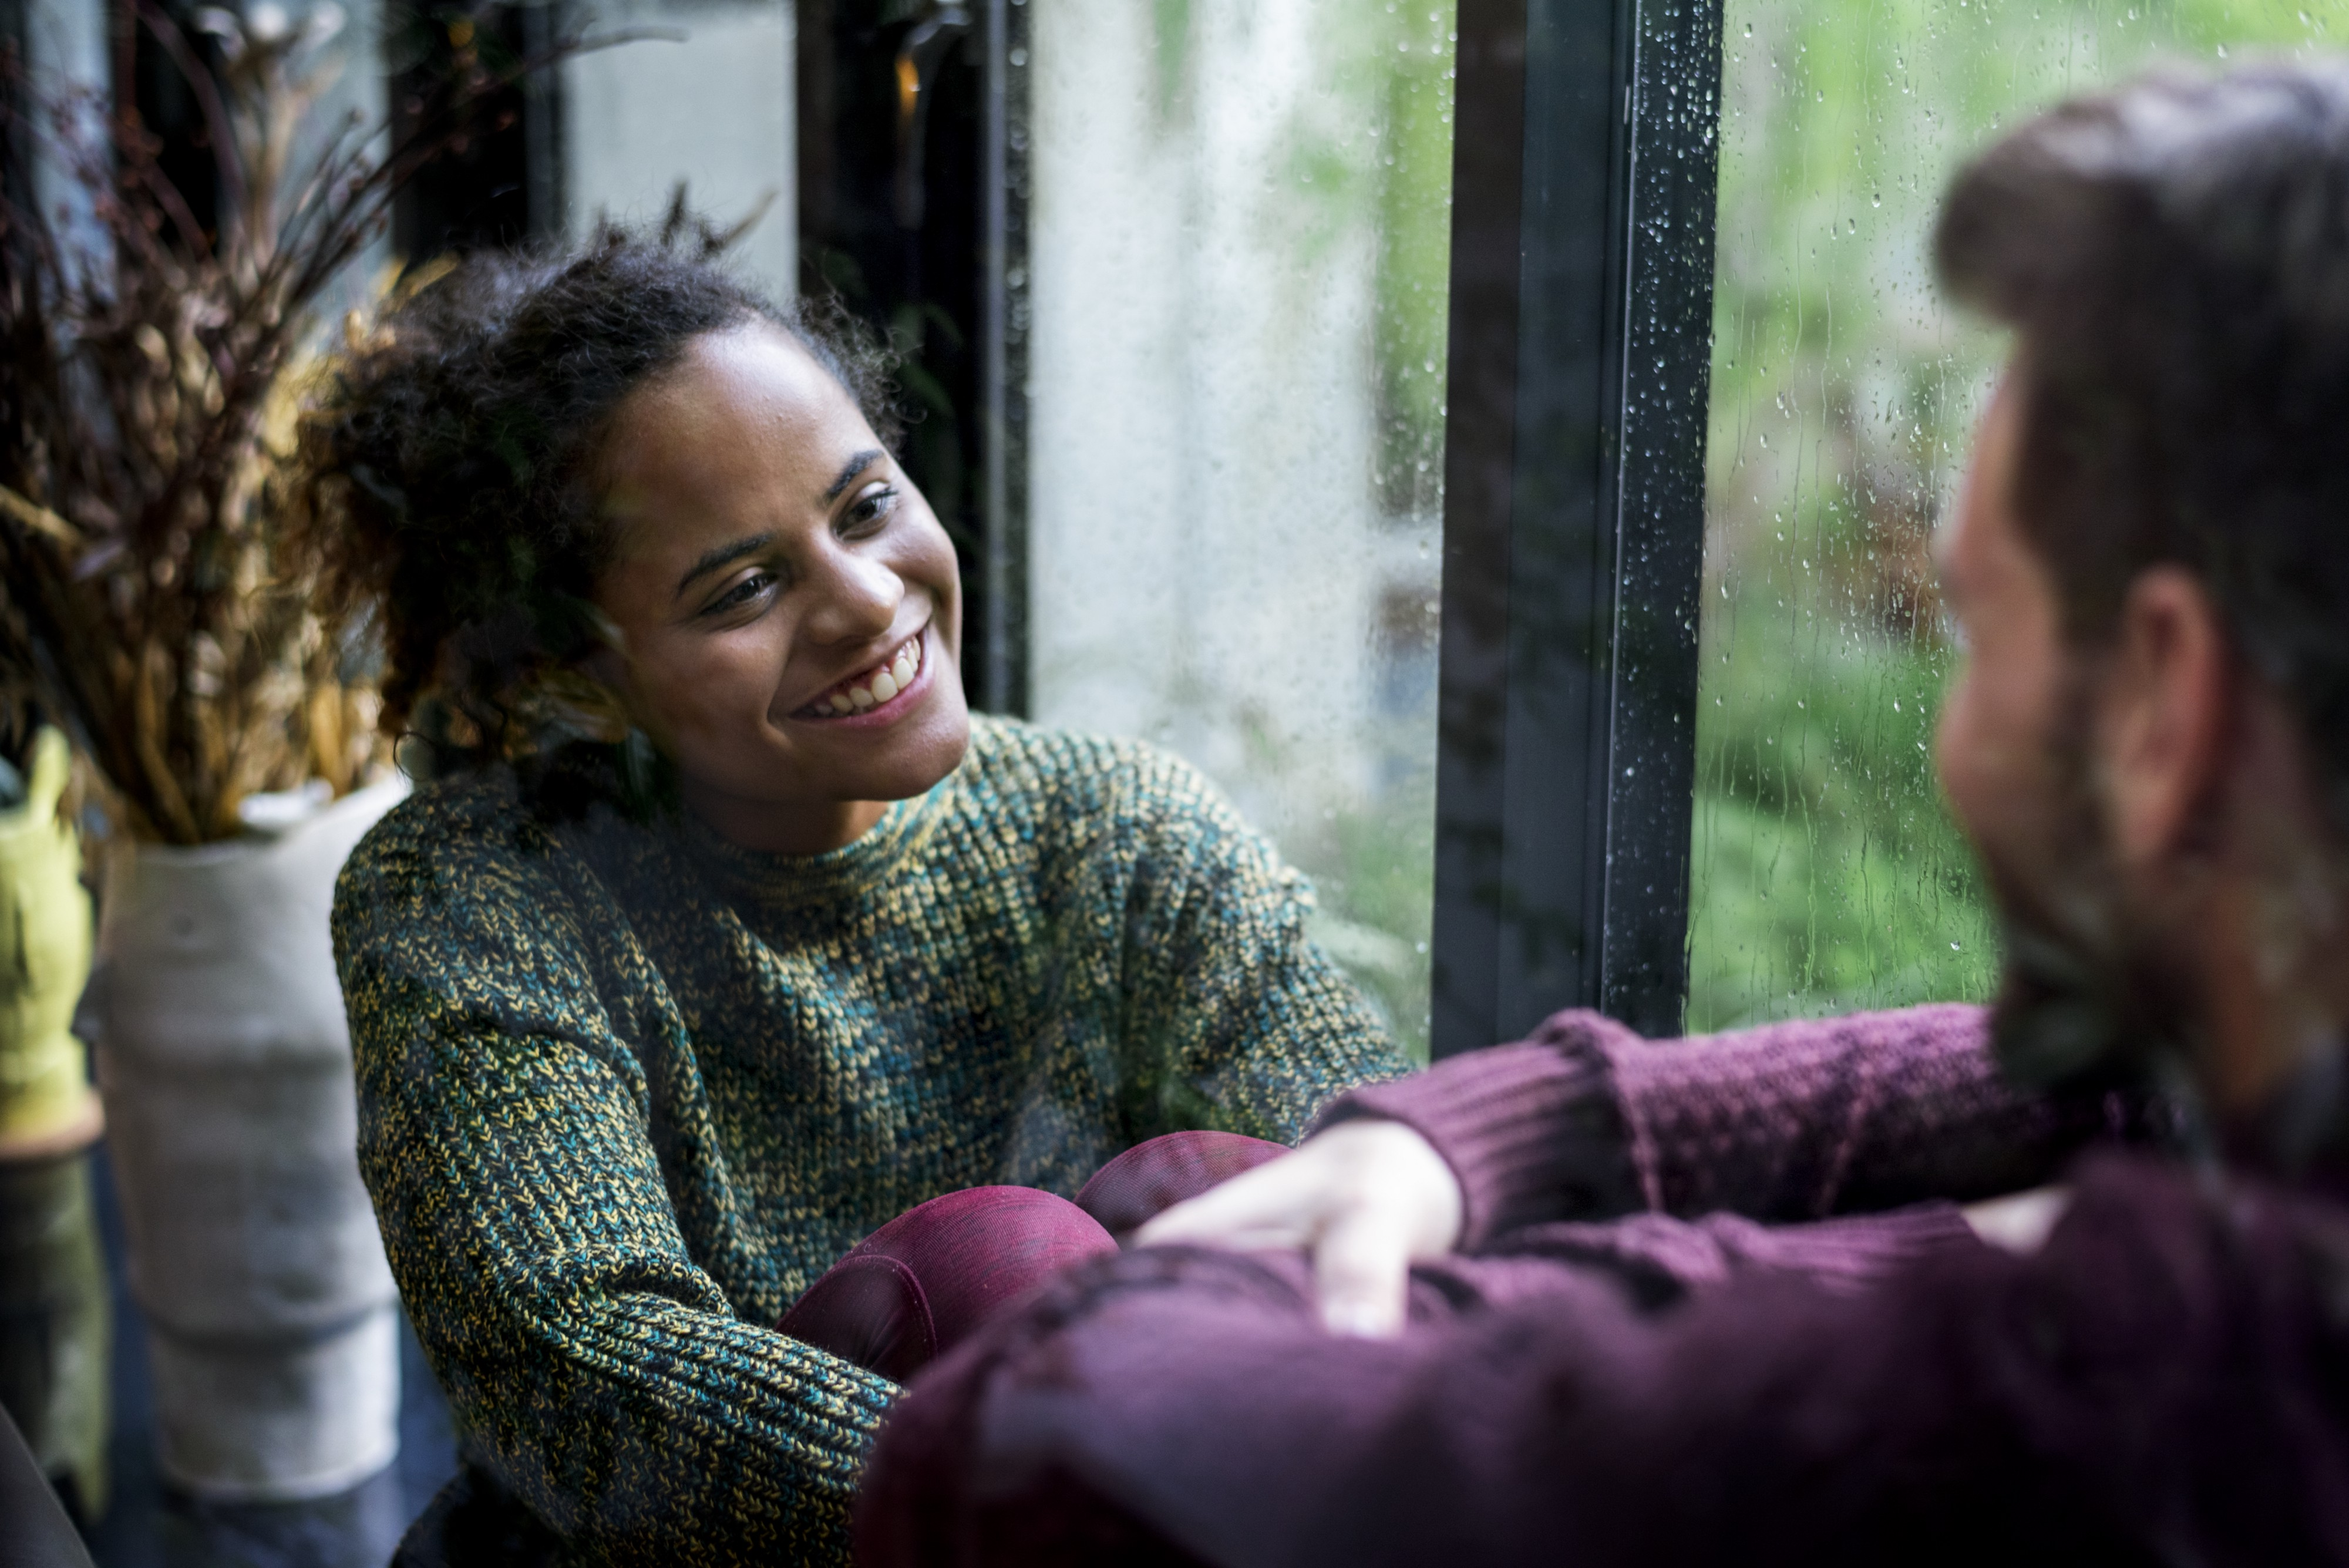 A couple talks happily in a window on a rainy day.